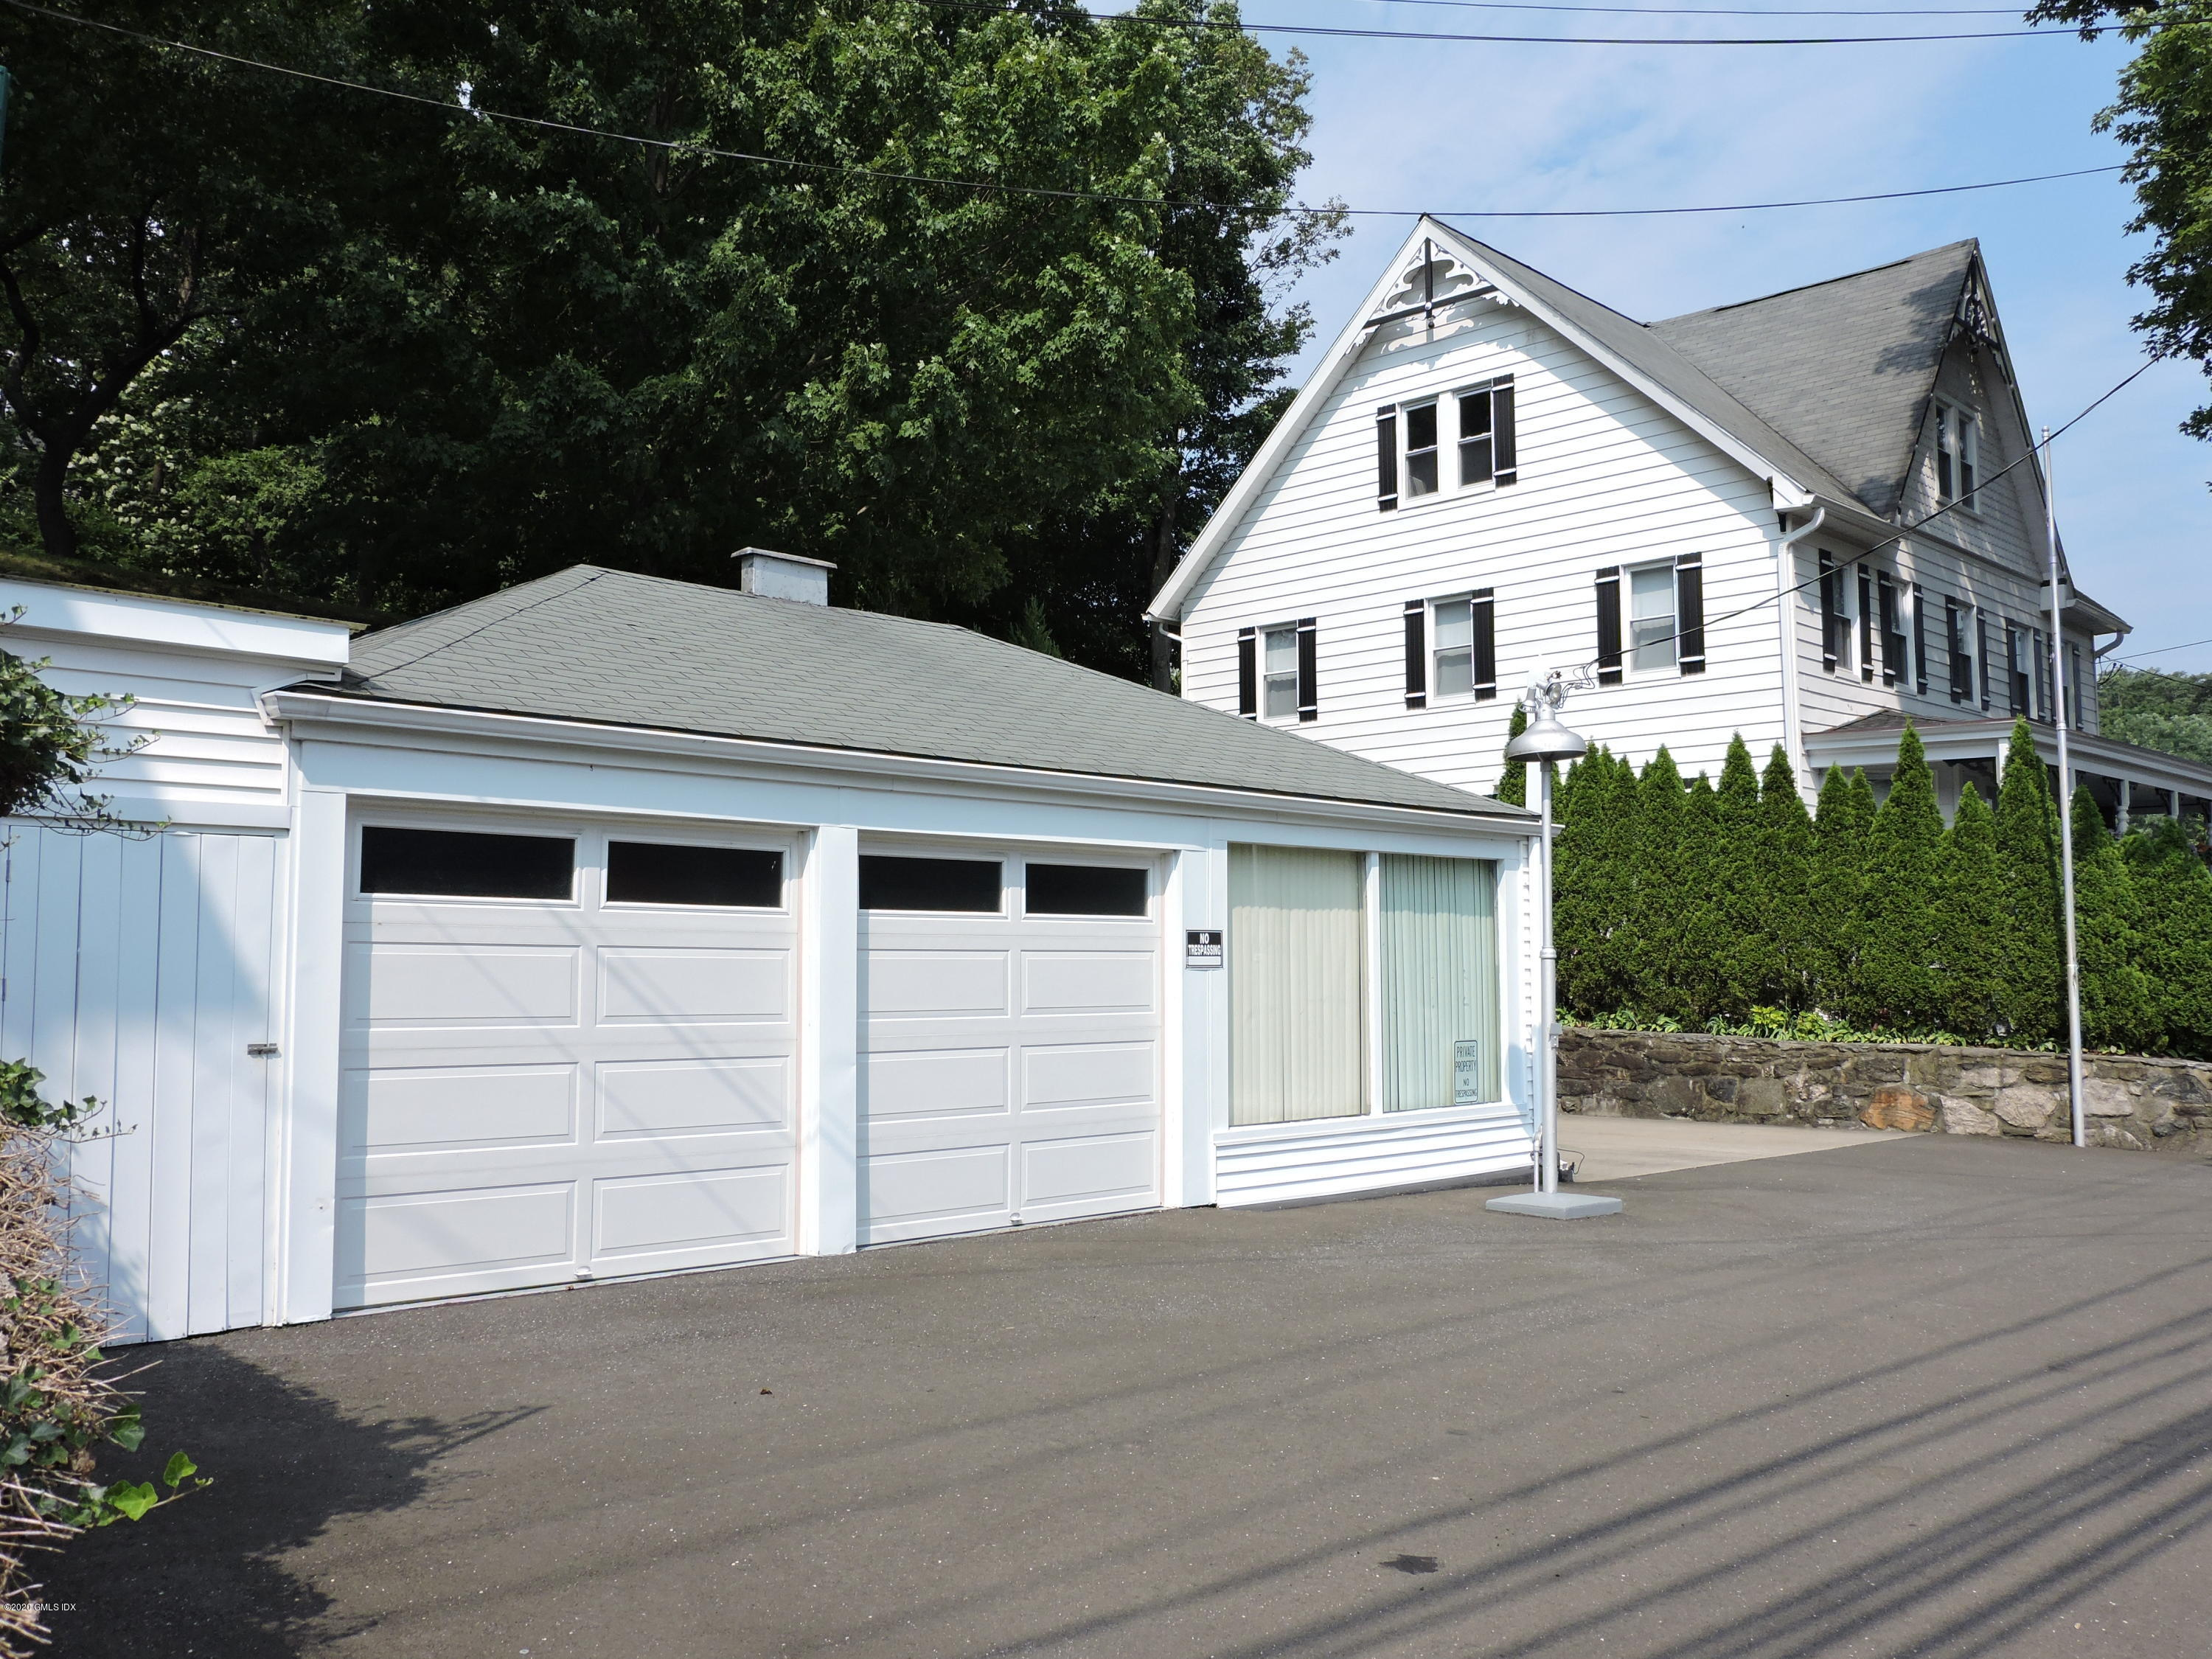 9 Glenville Street, Greenwich, Connecticut 06831, 5 Bedrooms Bedrooms, ,2 BathroomsBathrooms,Single family,For sale,Glenville,108491